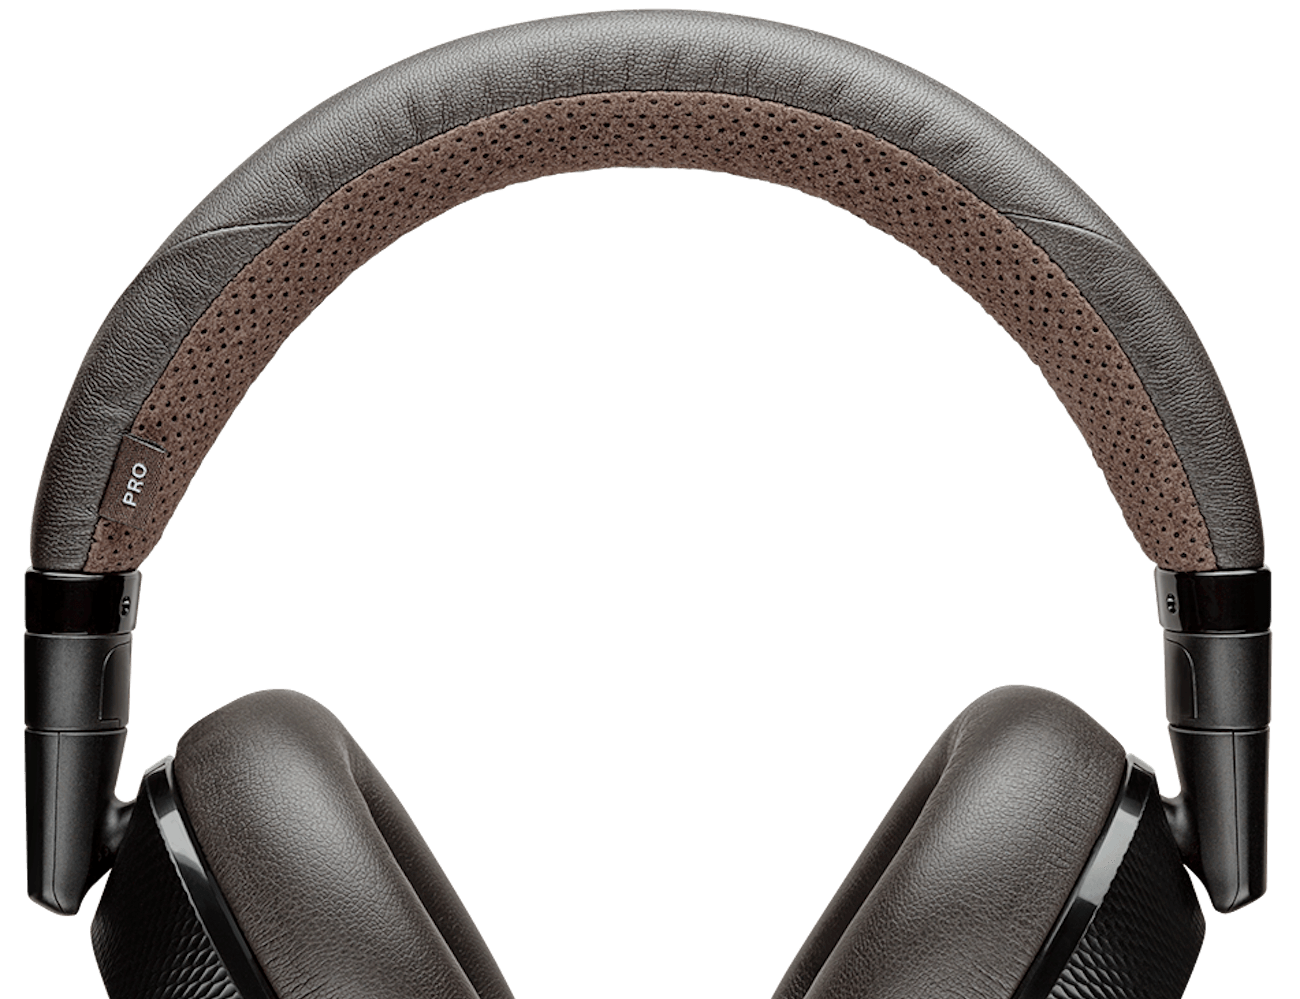 Plantronic BackBeat Pro 2 Headphones